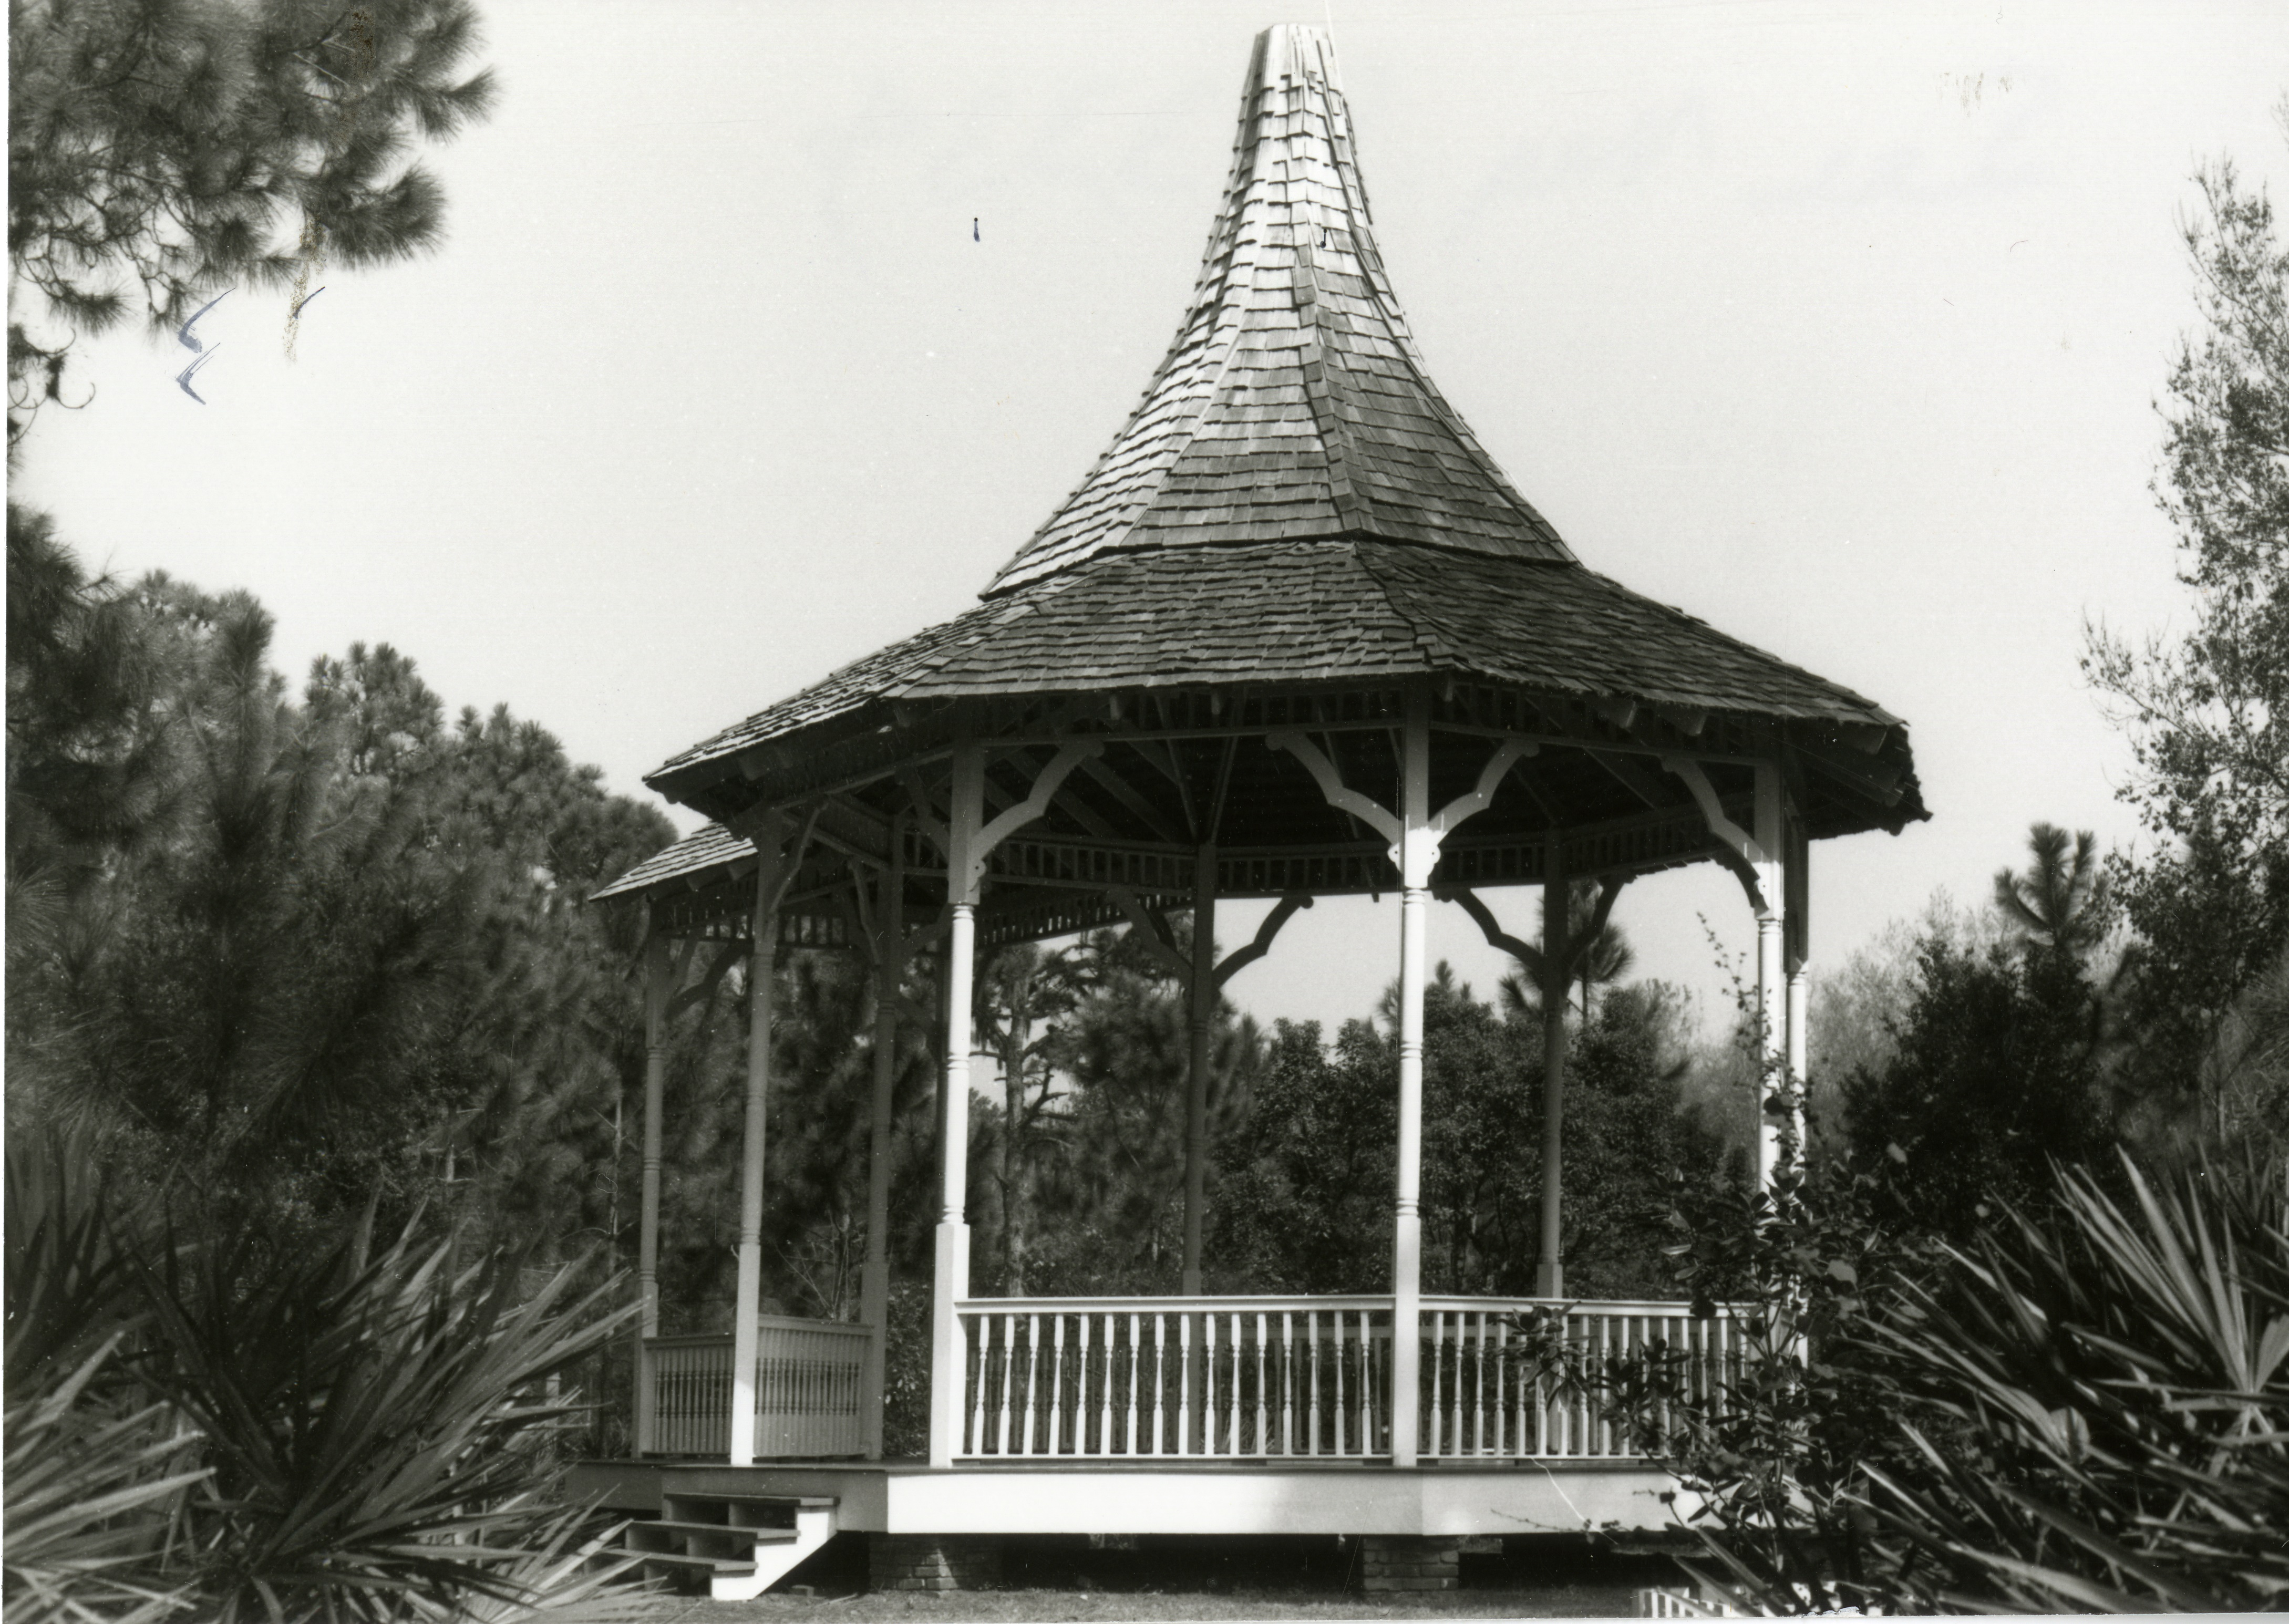 Williams Park Bandstand replica at Heritage Village, Largo, Florida, in 1987. The original bandstand was destroyed in the Tampa Bay Hurricane of 1921.